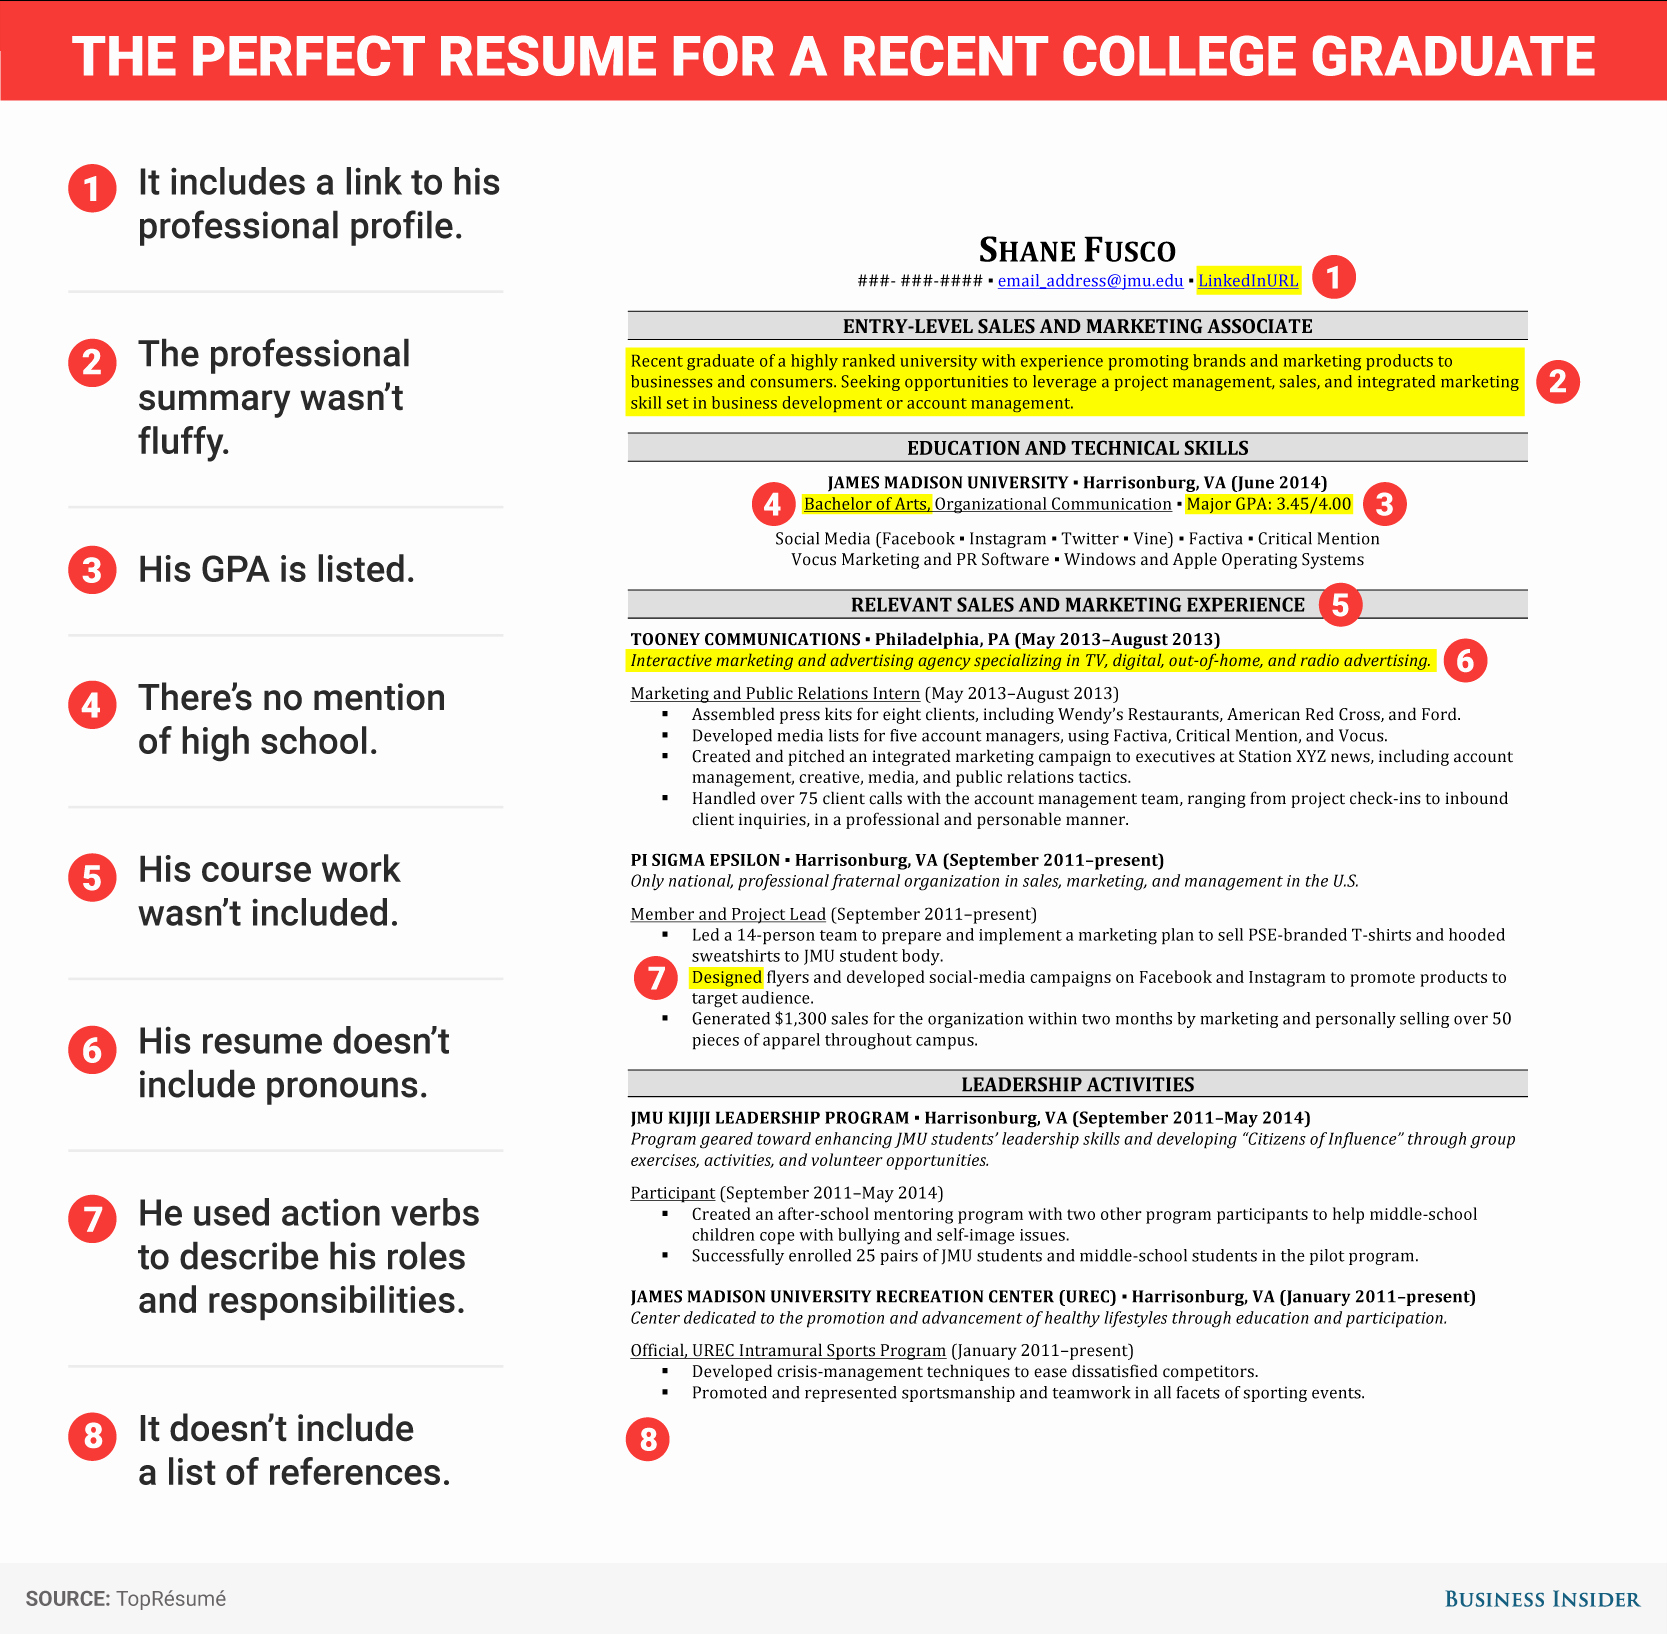 Resumes for Recent College Grads Inspirational Excellent Resume for Recent College Grad Business Insider